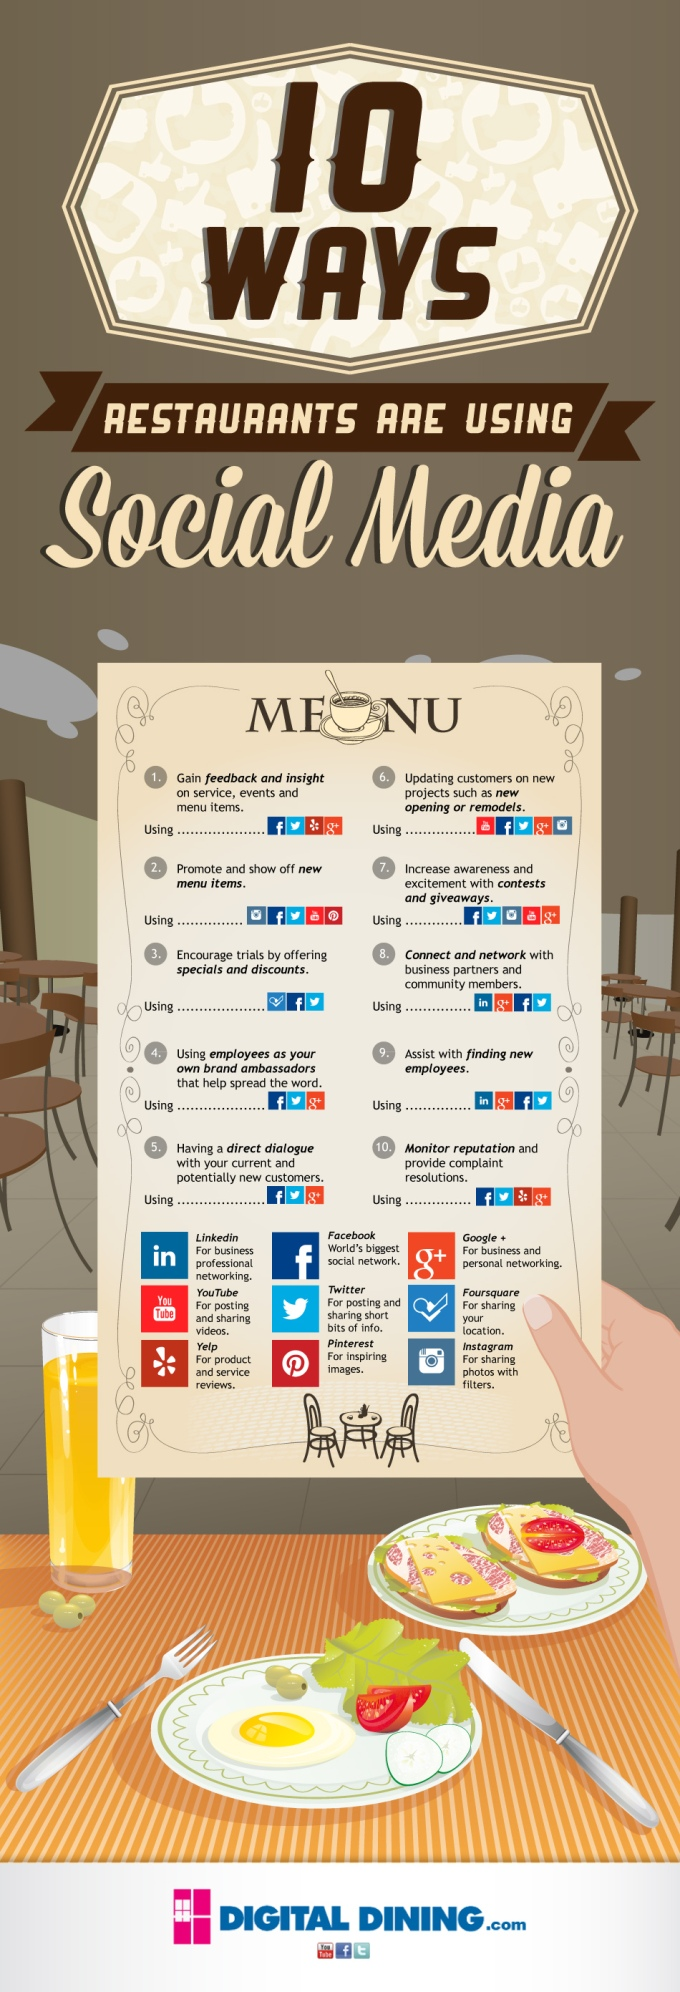 10 Ways Restaurants Should Use Social Media